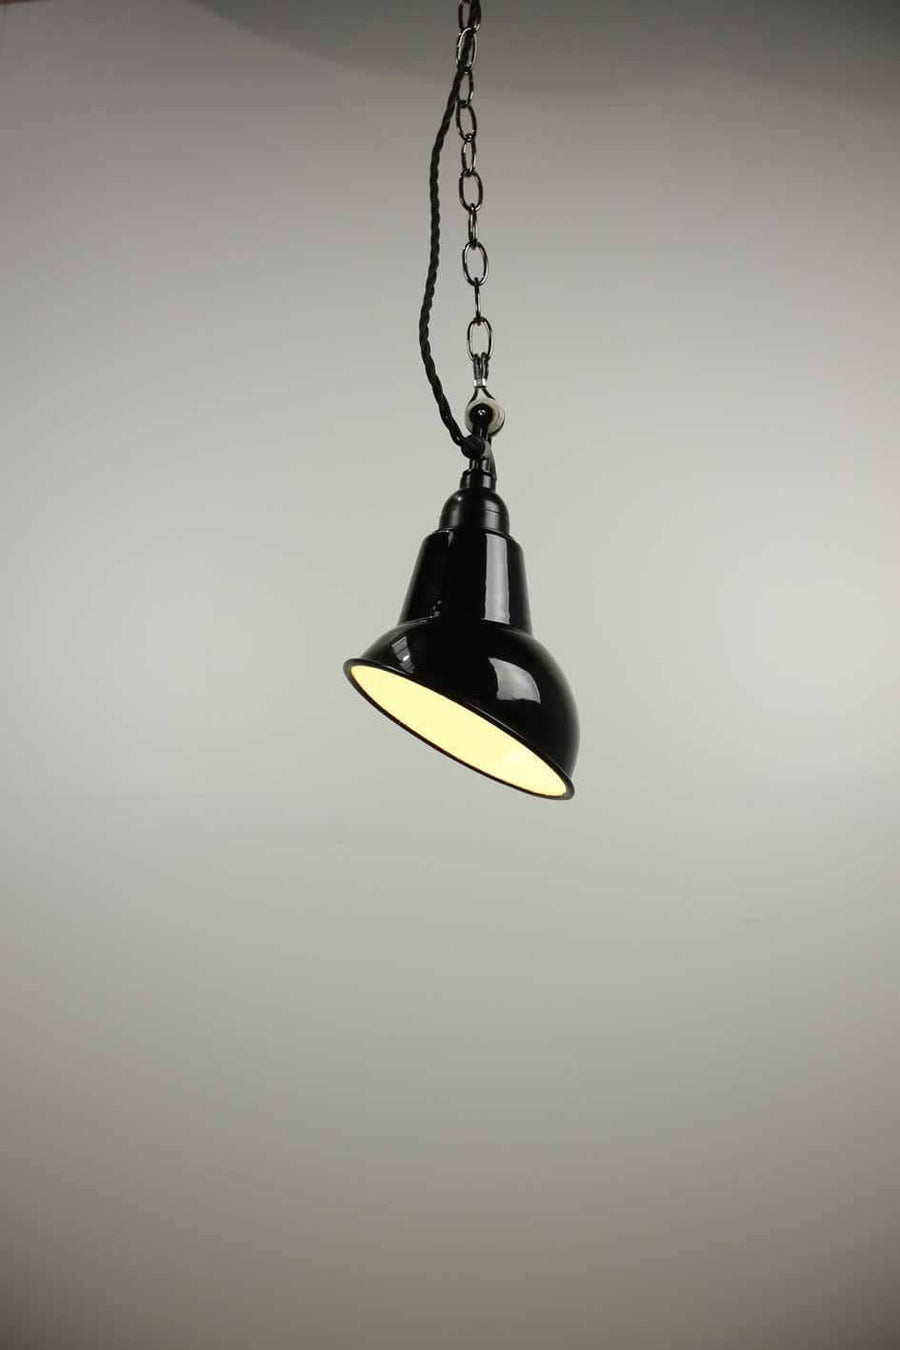 P485 single light pendant black light retro cafe lighting interior design vintage